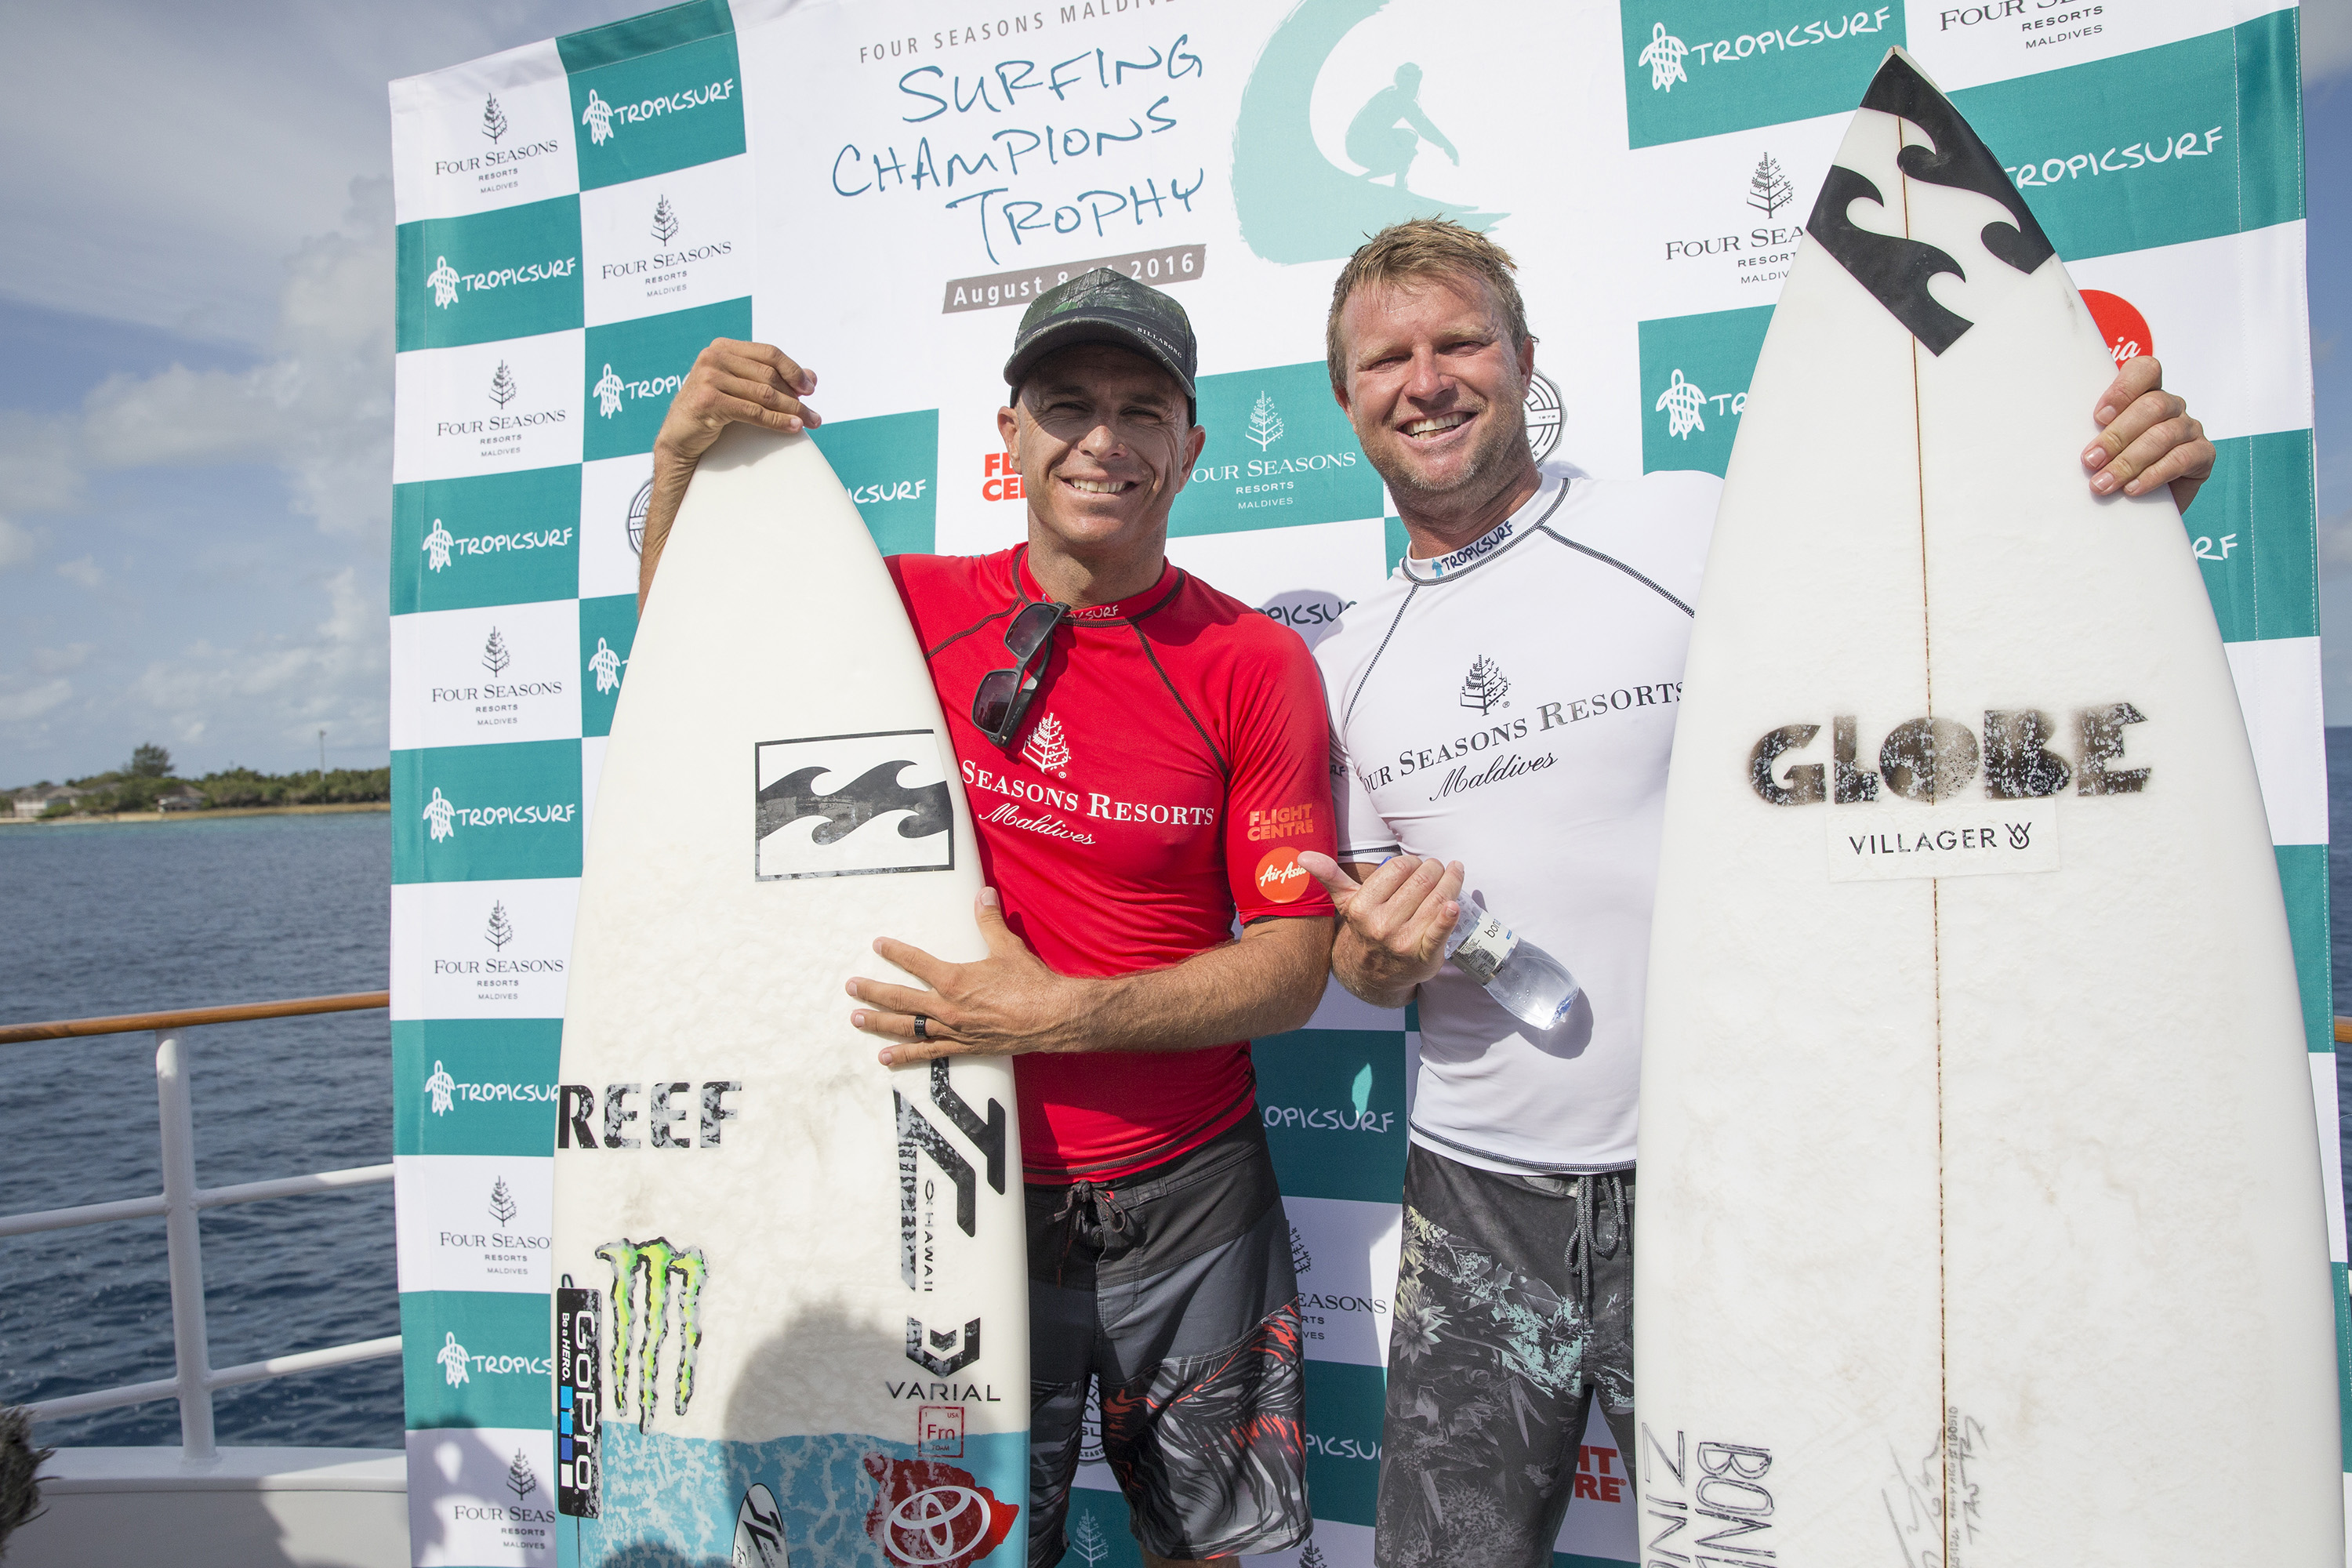 ee3889a584b742 Taj Burrow has claimed victory at the 2016 Four Seasons Maldives Surfing  Champions Trophy   Sean Scott